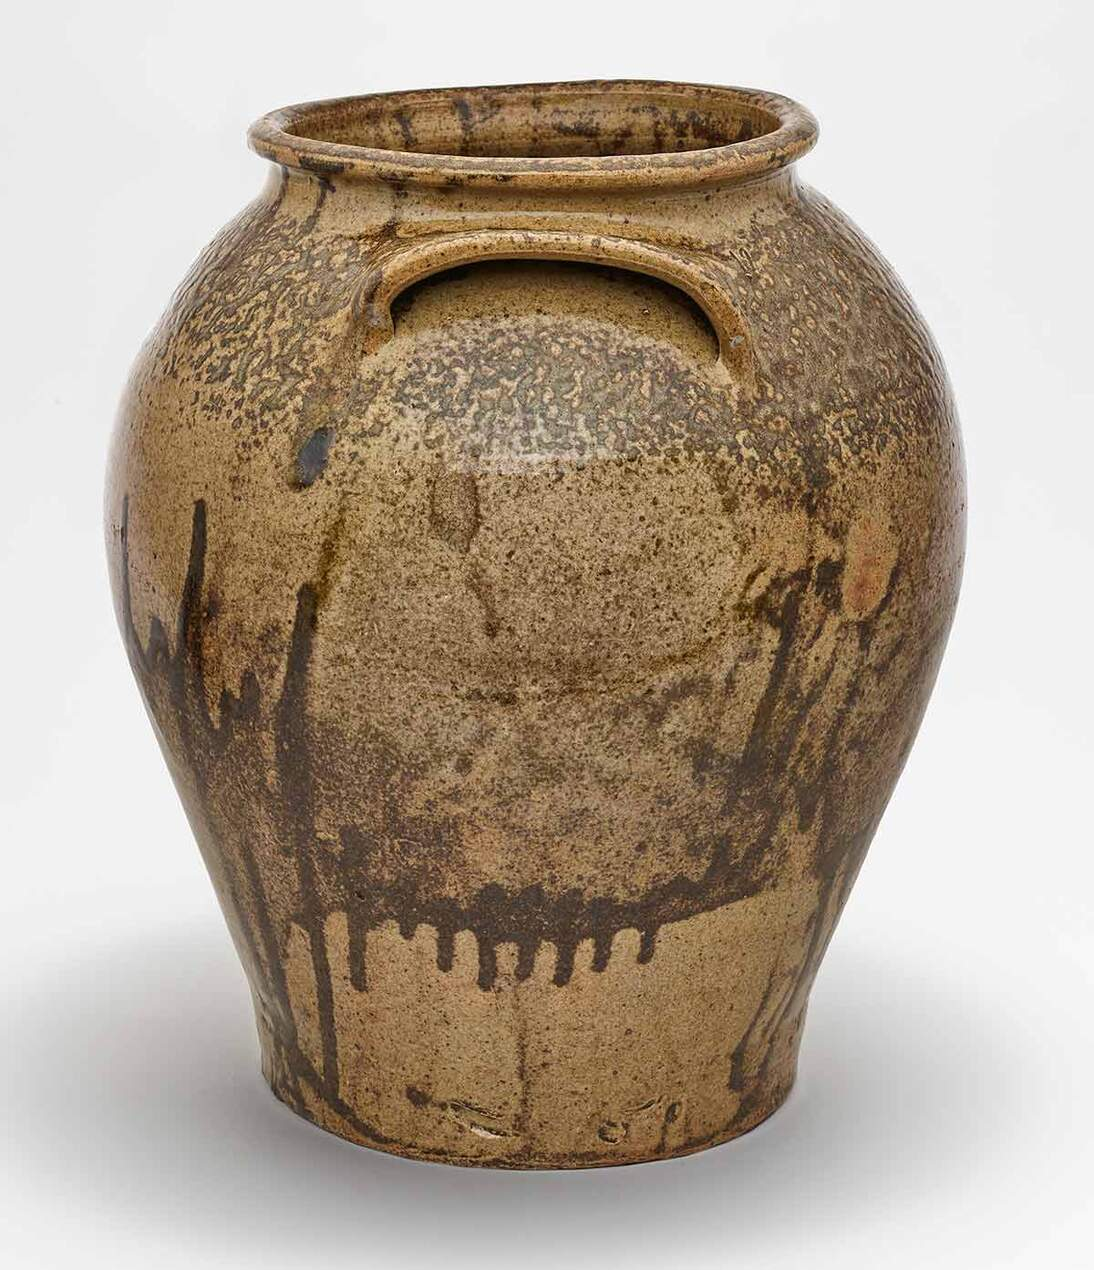 "David Drake (ca. 1800–ca. 1870s) artist; Pottersville Stoneware Manufactory, Edgefield District, South Carolina, manufacturer, ""Catination"" Storage Jar, April 12, 1836. Glazed stoneware, height: 14 7/8 in. (37.8 cm); diameter: 12 5/8 in. (32.1 cm). Museum purchase, Calvin L. Malone American Arts and Crafts Fund, American Art Trust Fund, and American Decorative Arts Endowment Income Fund, 2020.57"